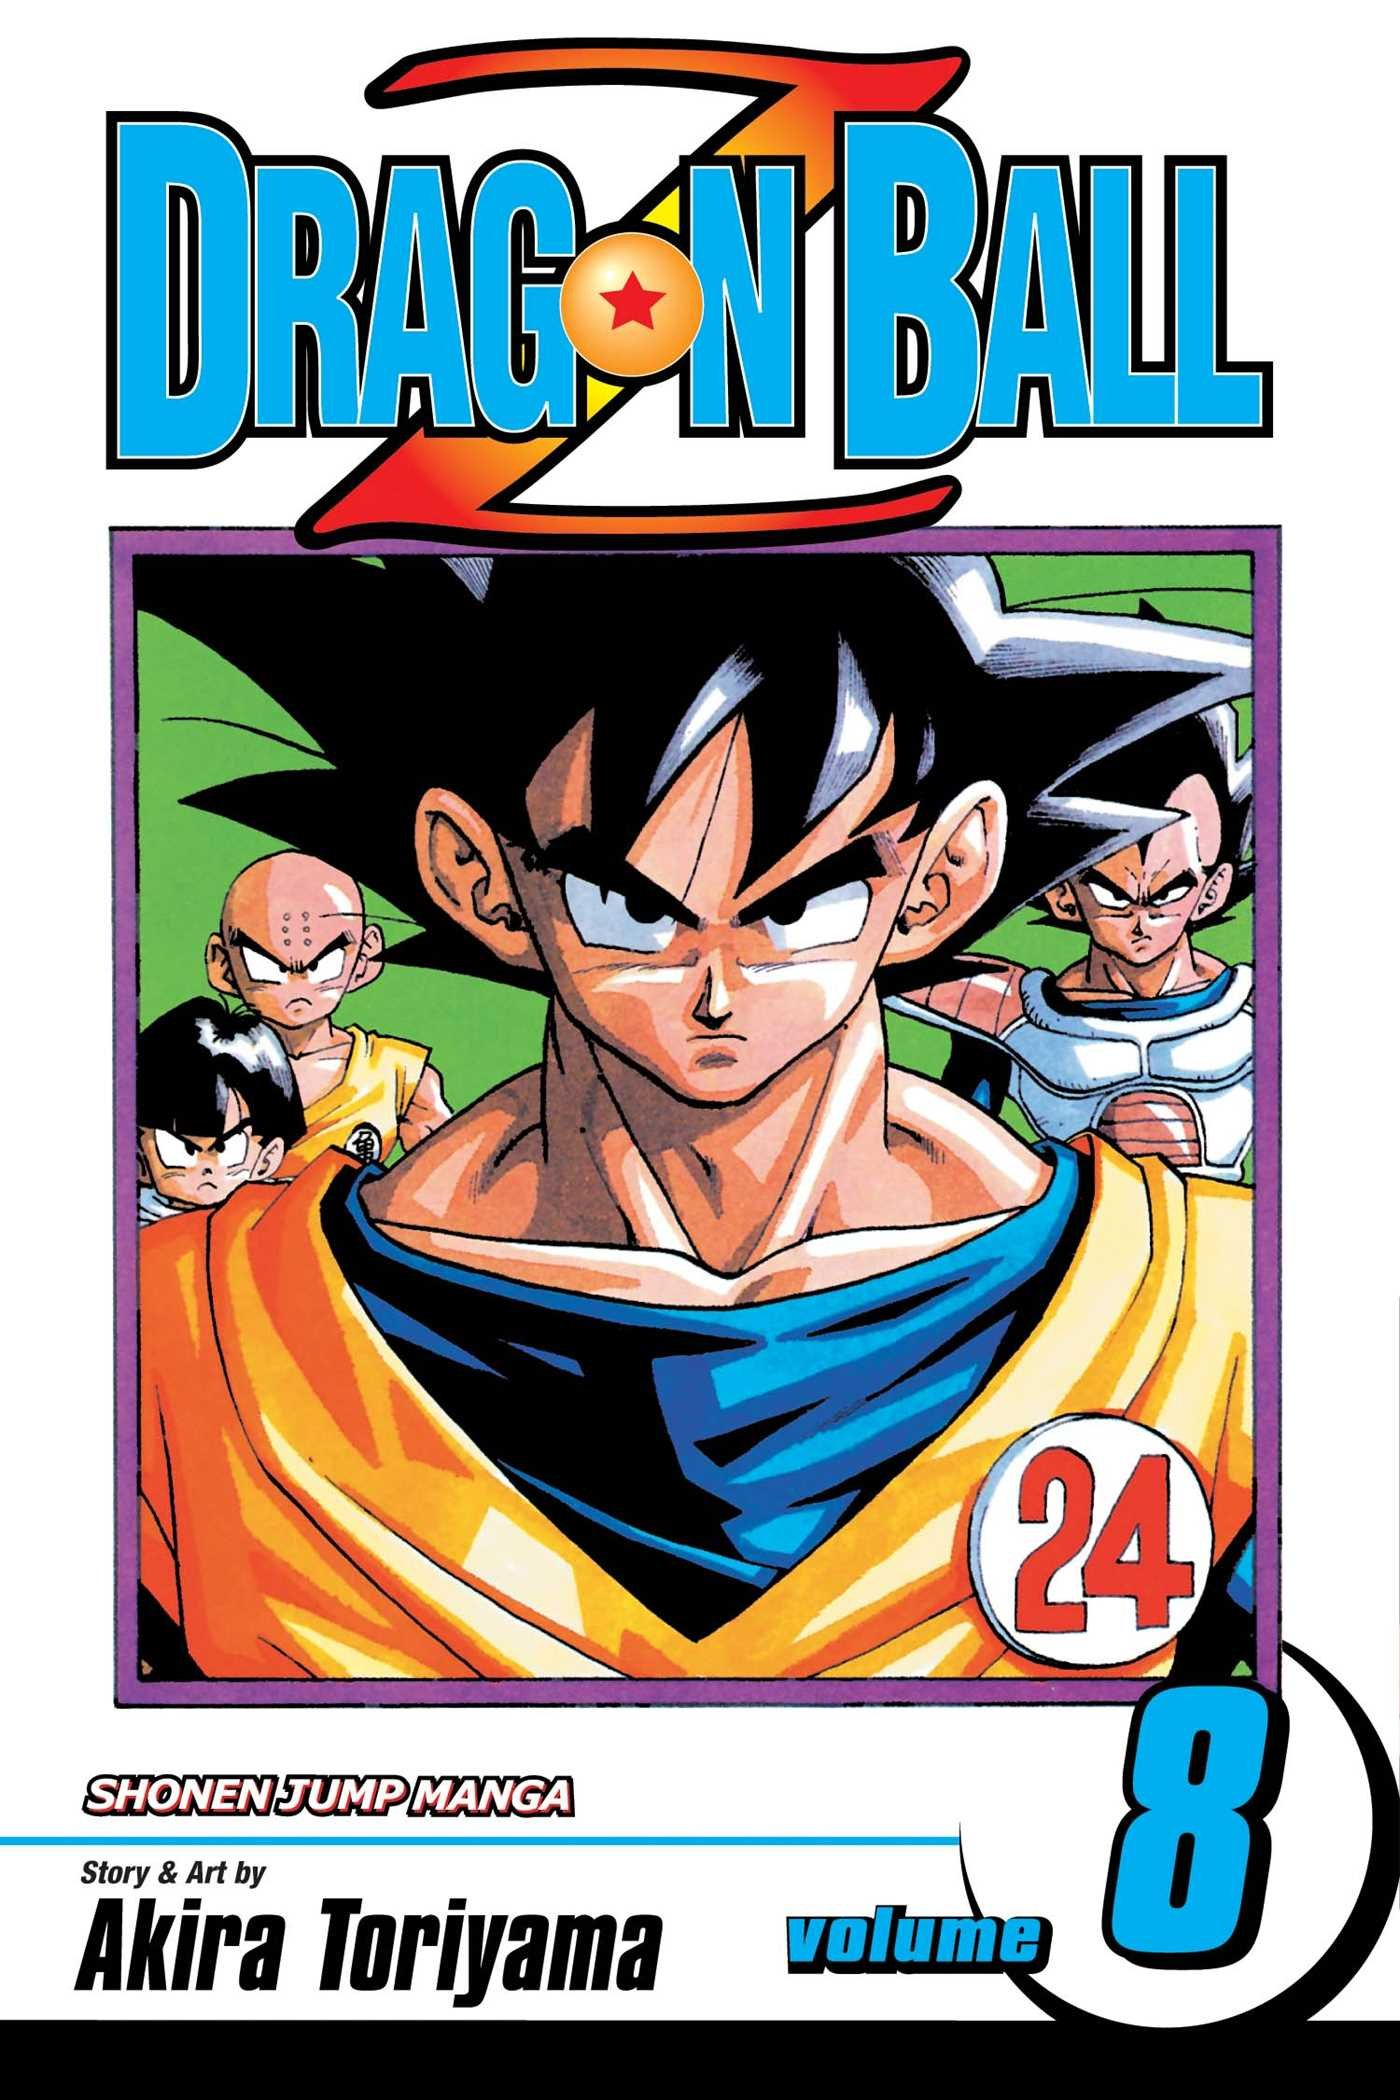 Dragon Ball Z Vol 8 Toriyama Akira Toriyama Akira 9781569319376 Amazon Com Books